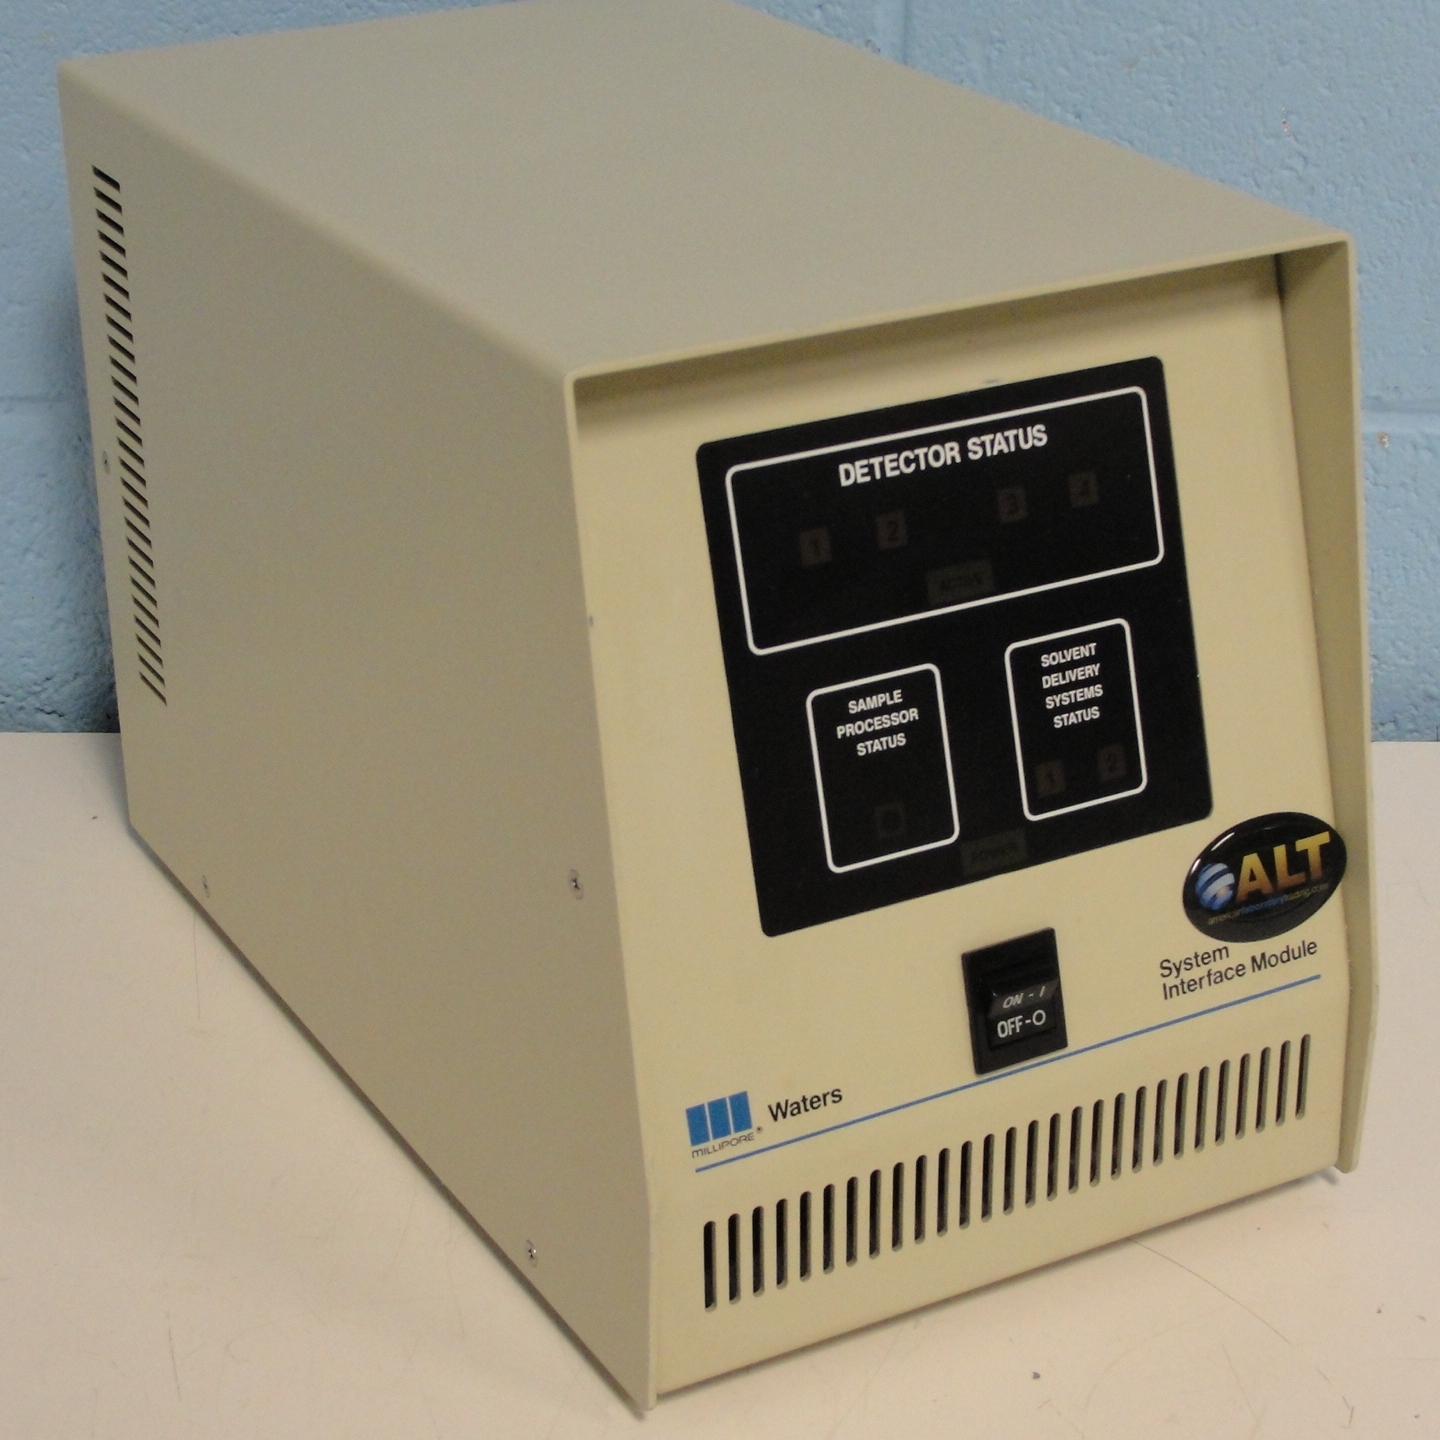 Waters System Interface Module Image